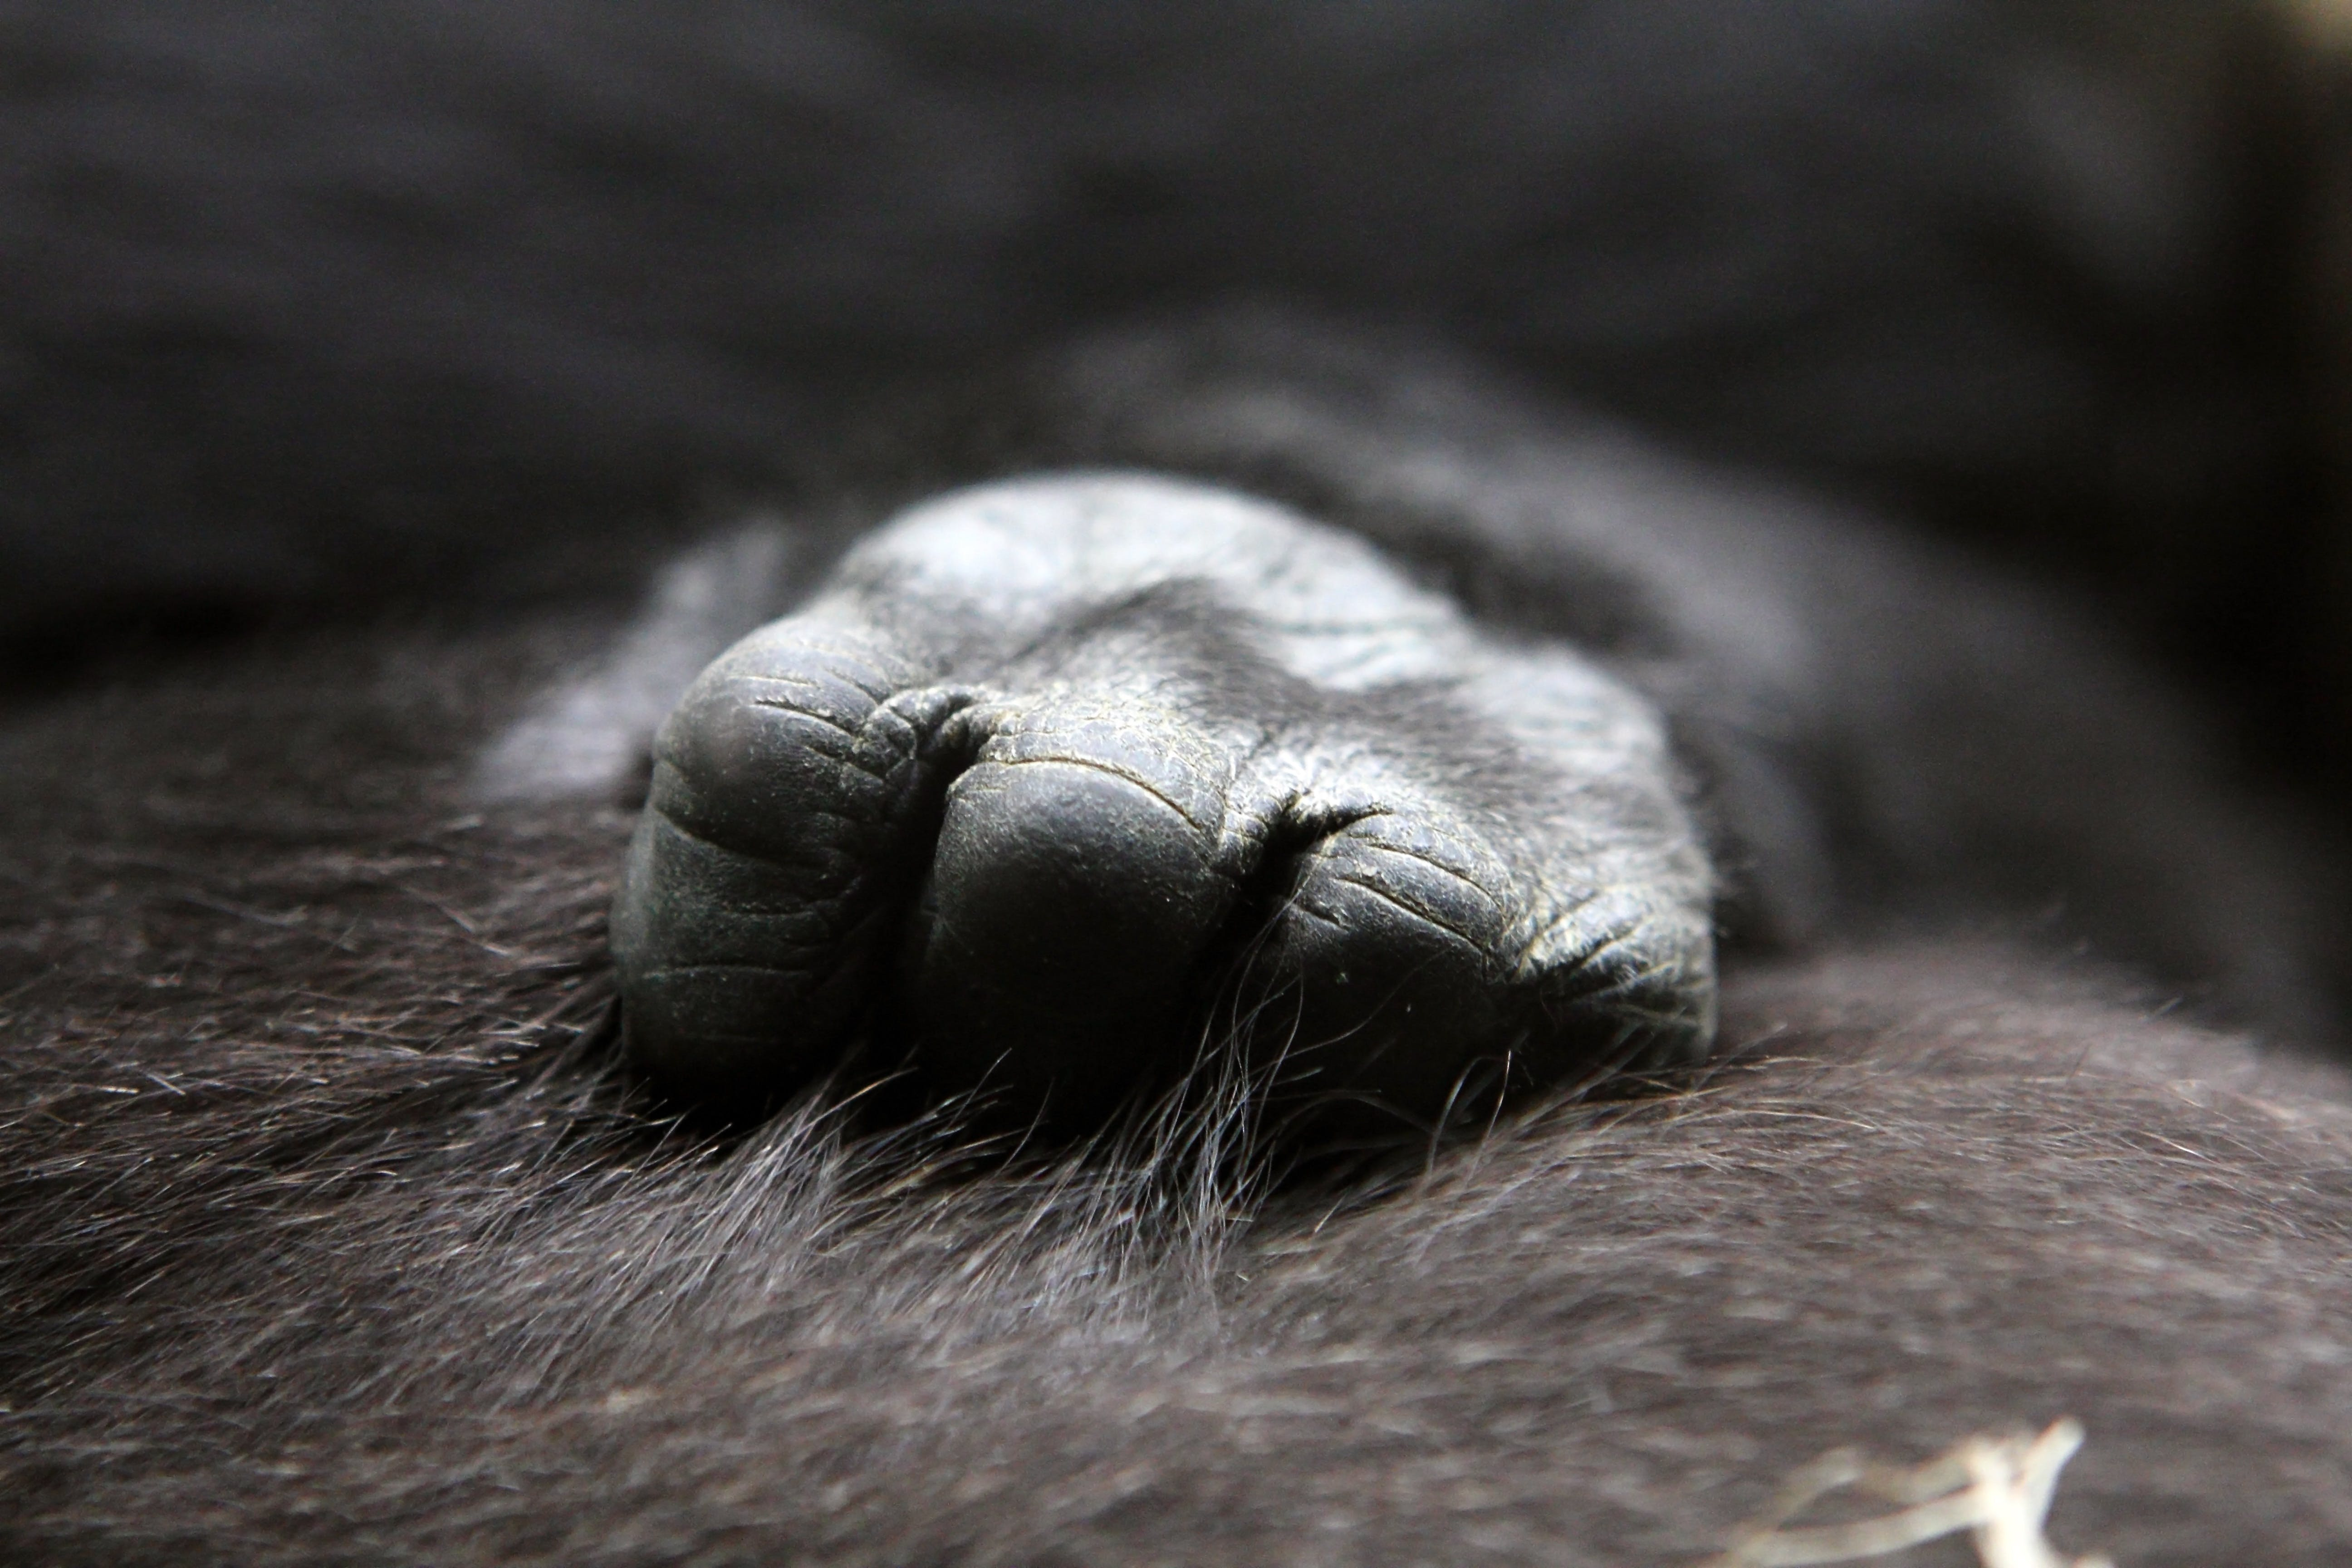 Close Up Photo of Ape's Hand